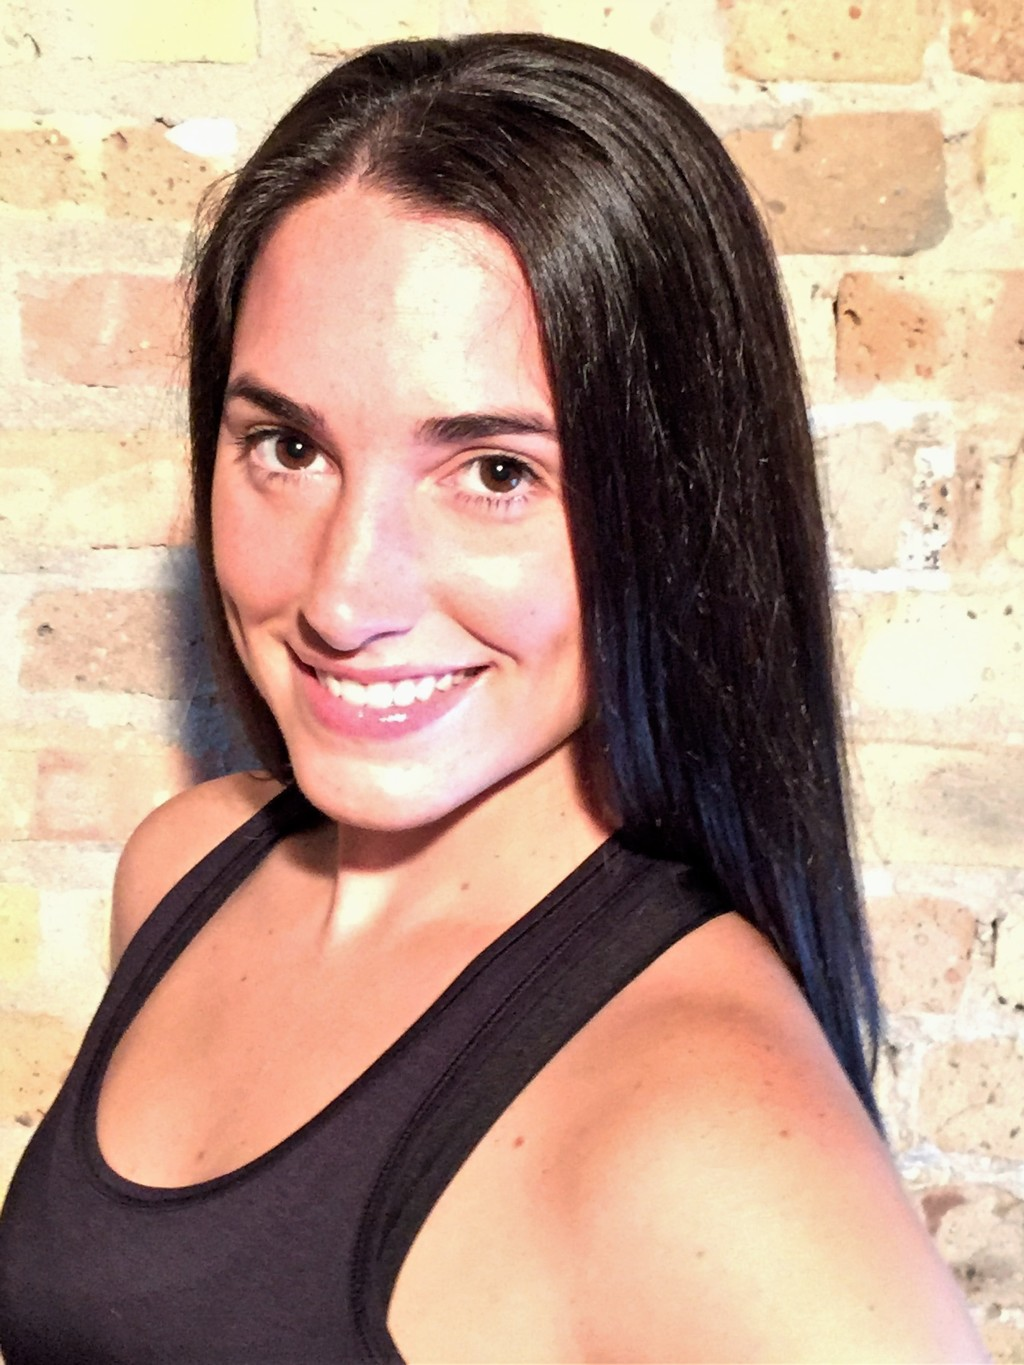 Chicago Personal Trainer Noelle T